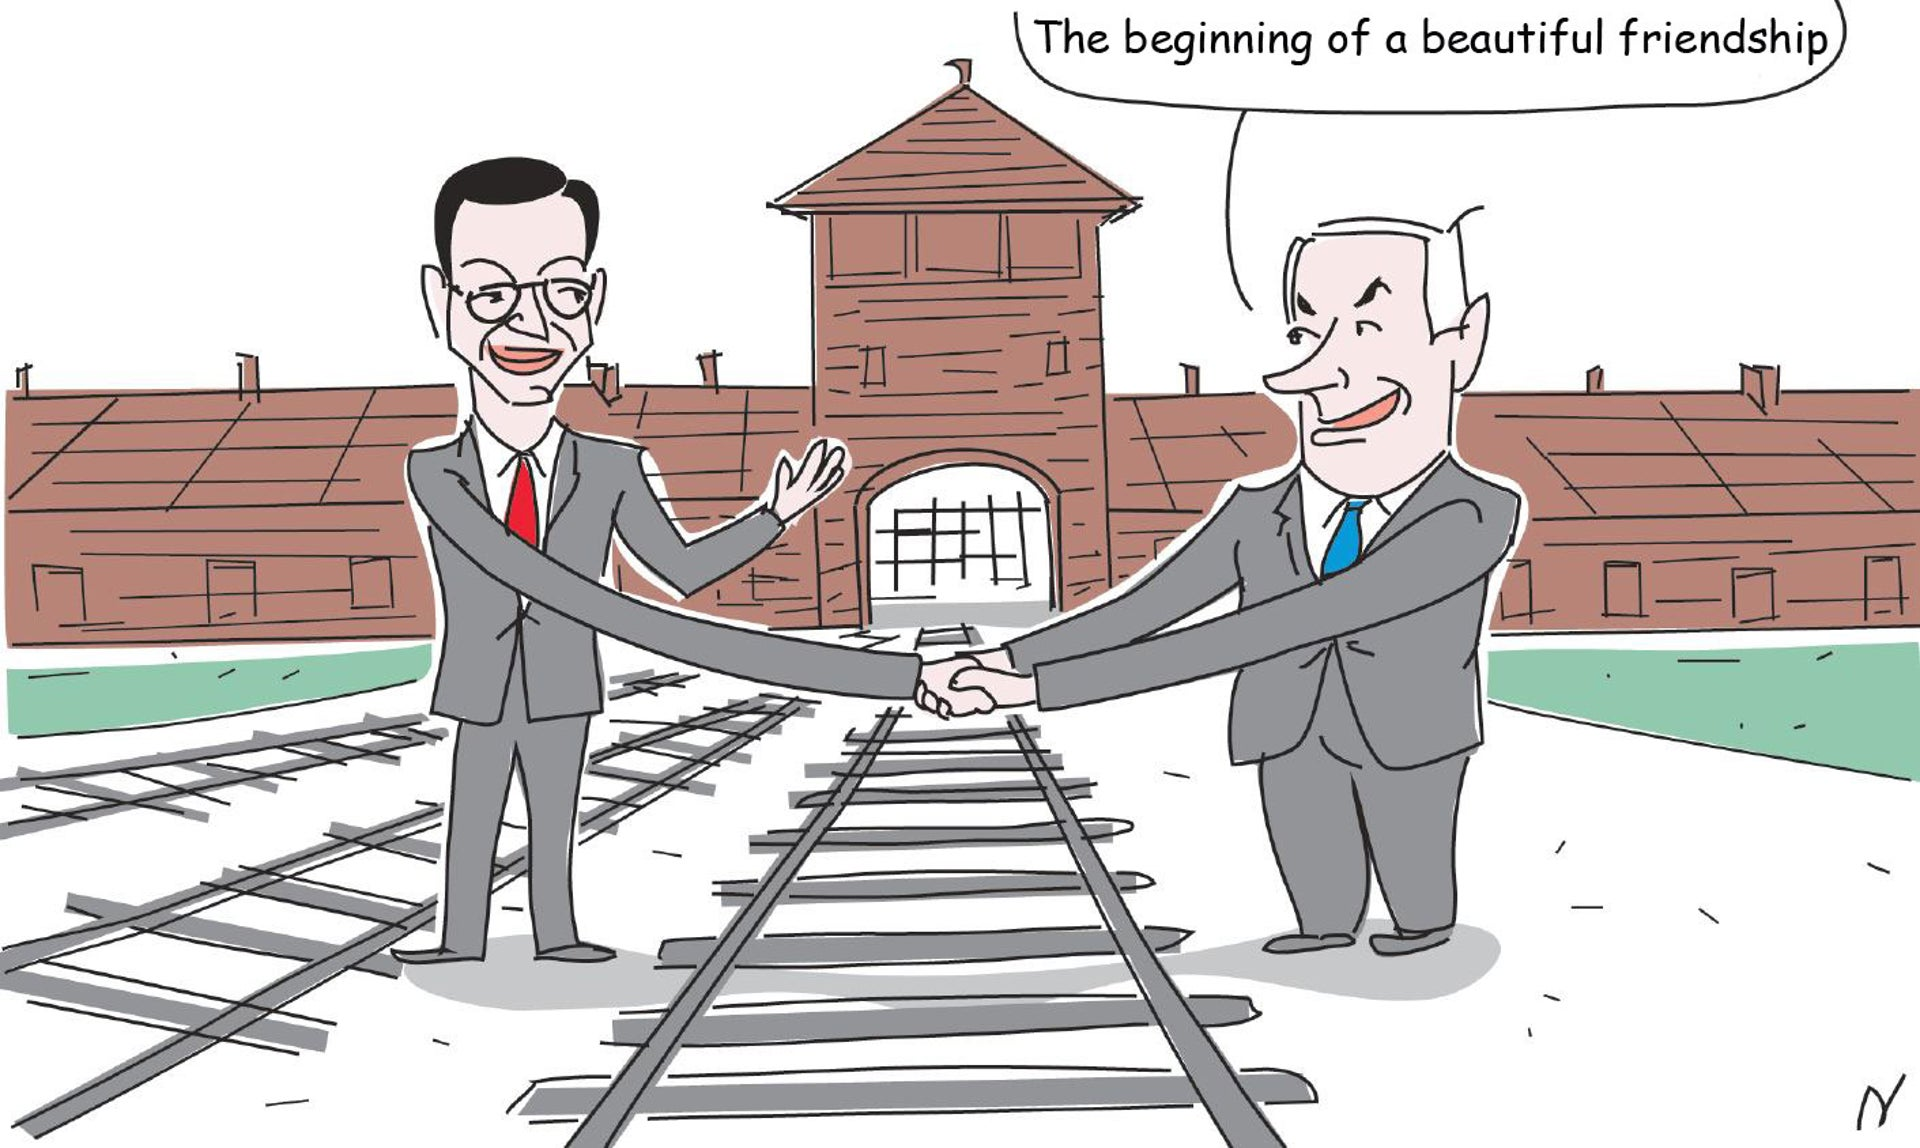 """An illustration depicting Prime Minister Benjamin Netanyahu shaking hands with Polish Prime Minister Mateusz Morawiecki in Auschwitz. A speech bubble above Netanyahu's head says """"The beginning of a beautiful friendship."""""""